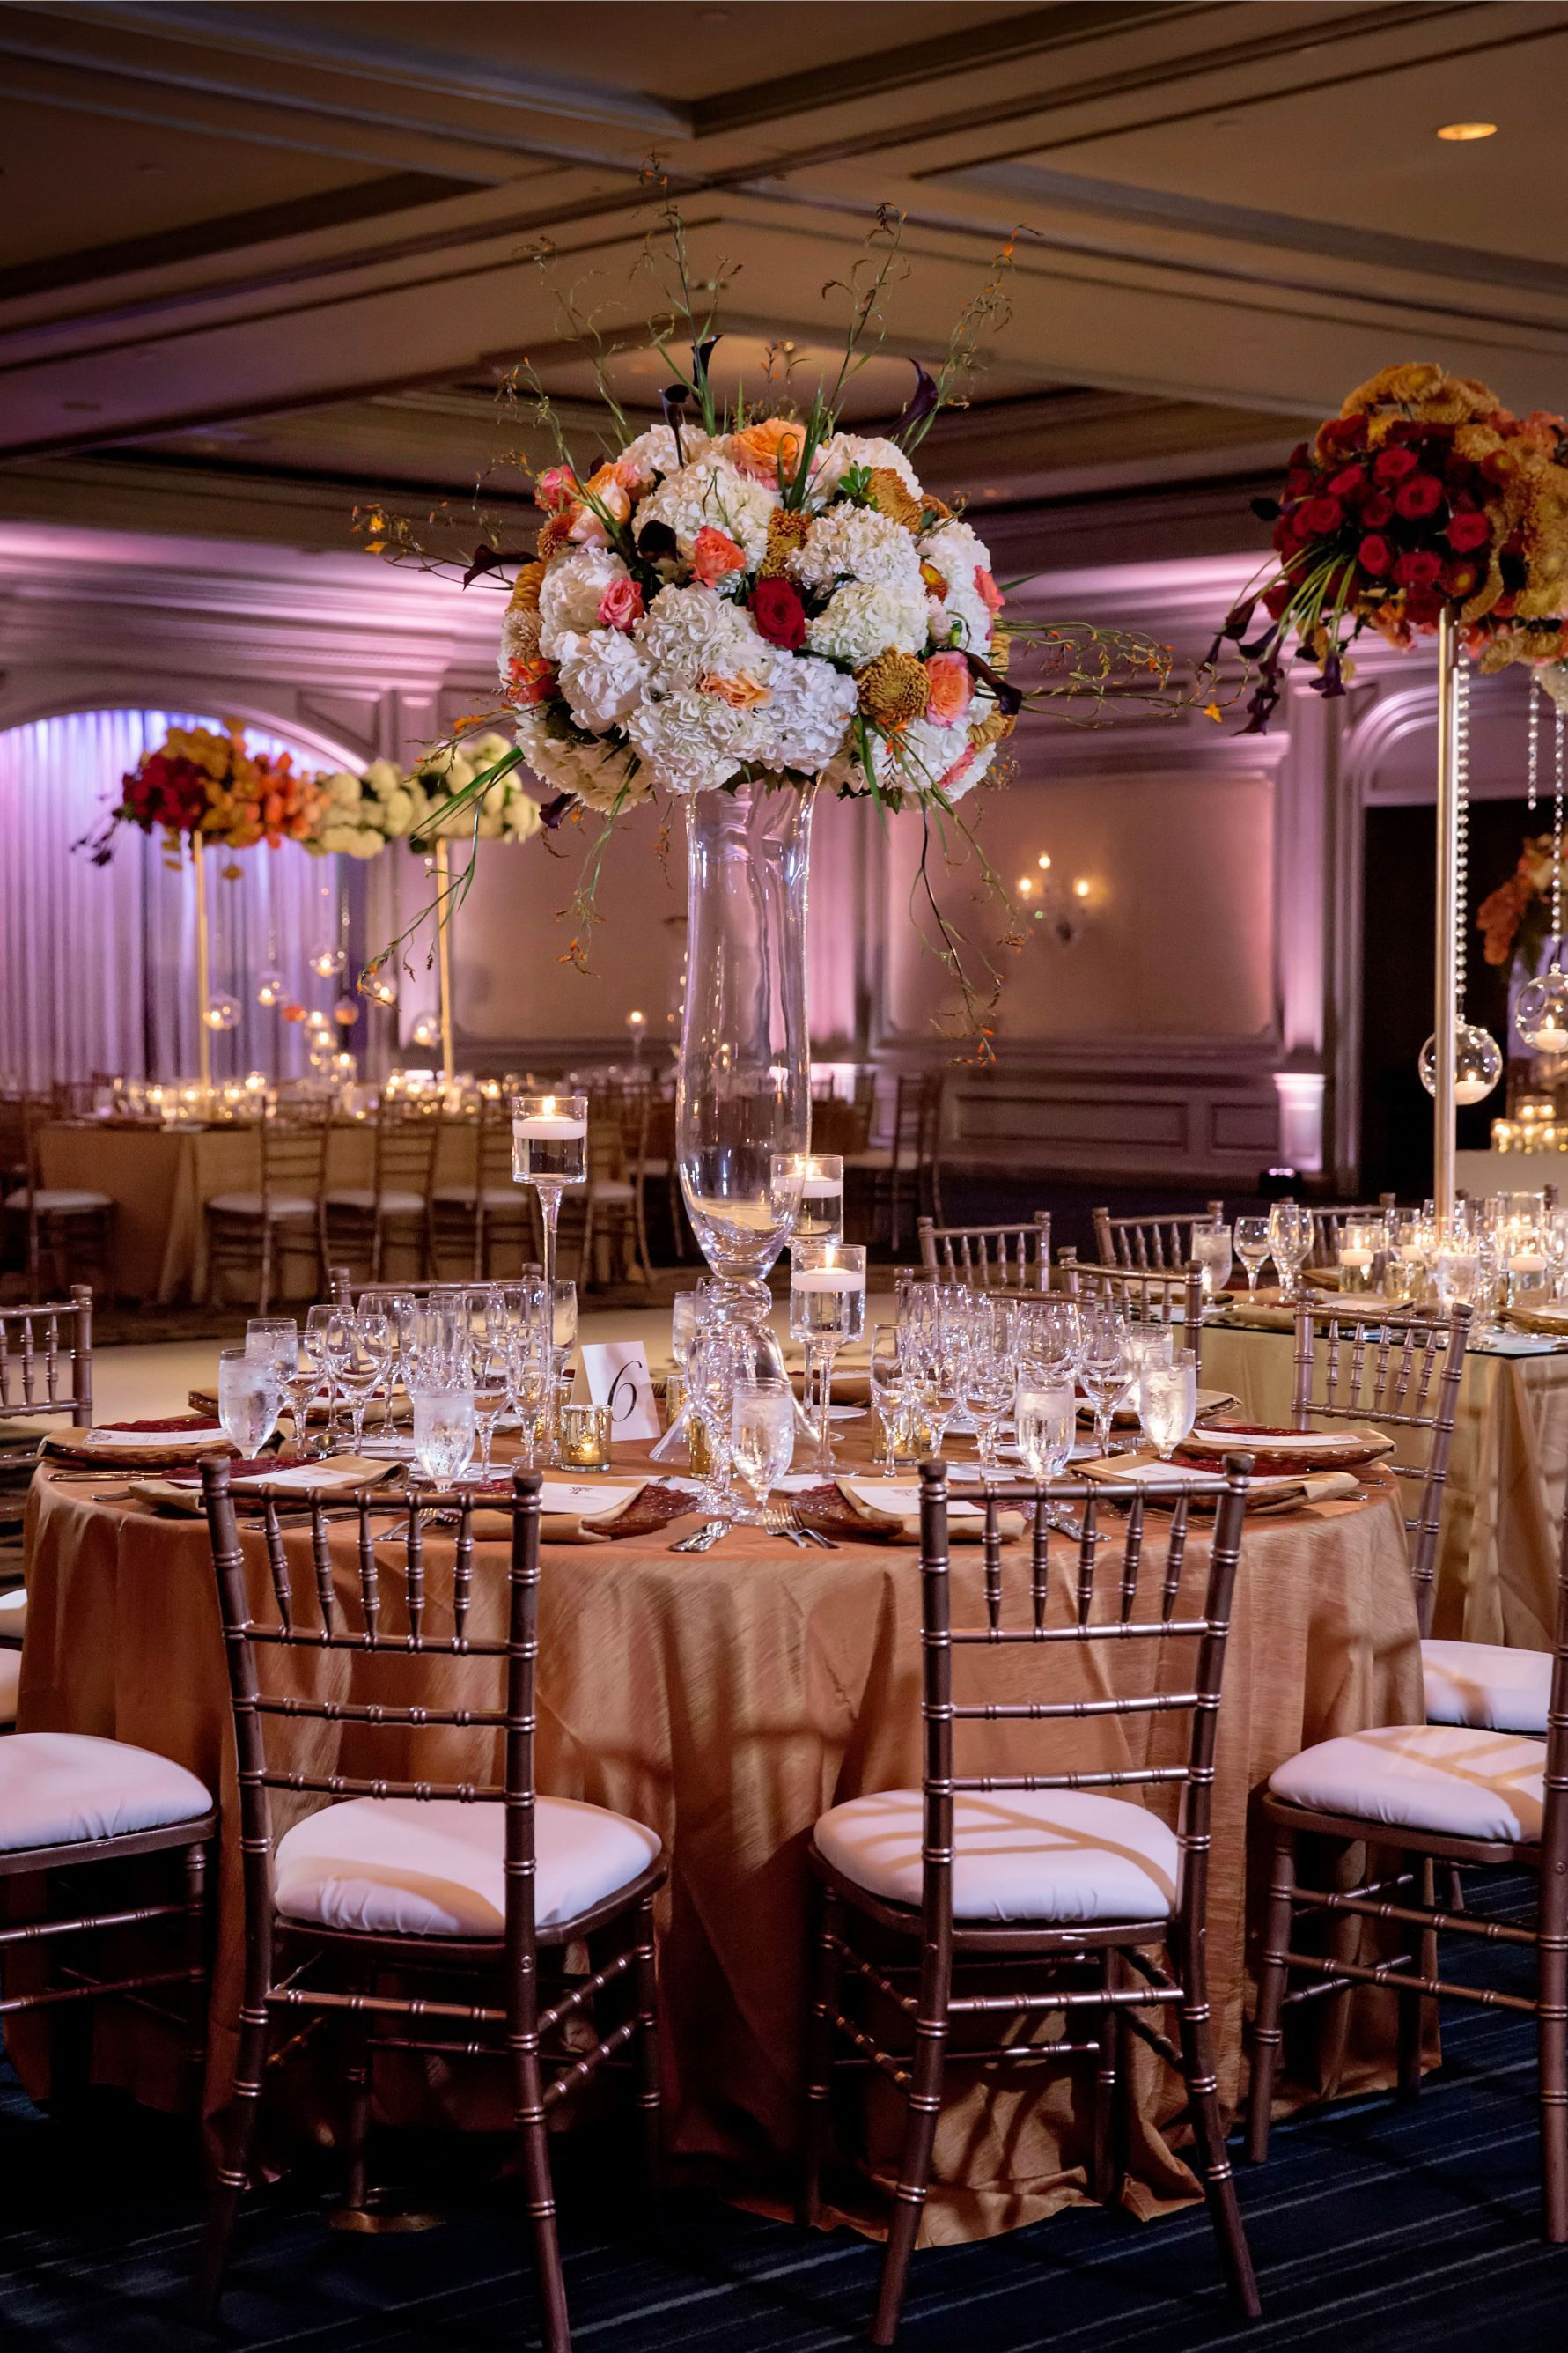 This fall wedding was a colorful dream! The sunset color